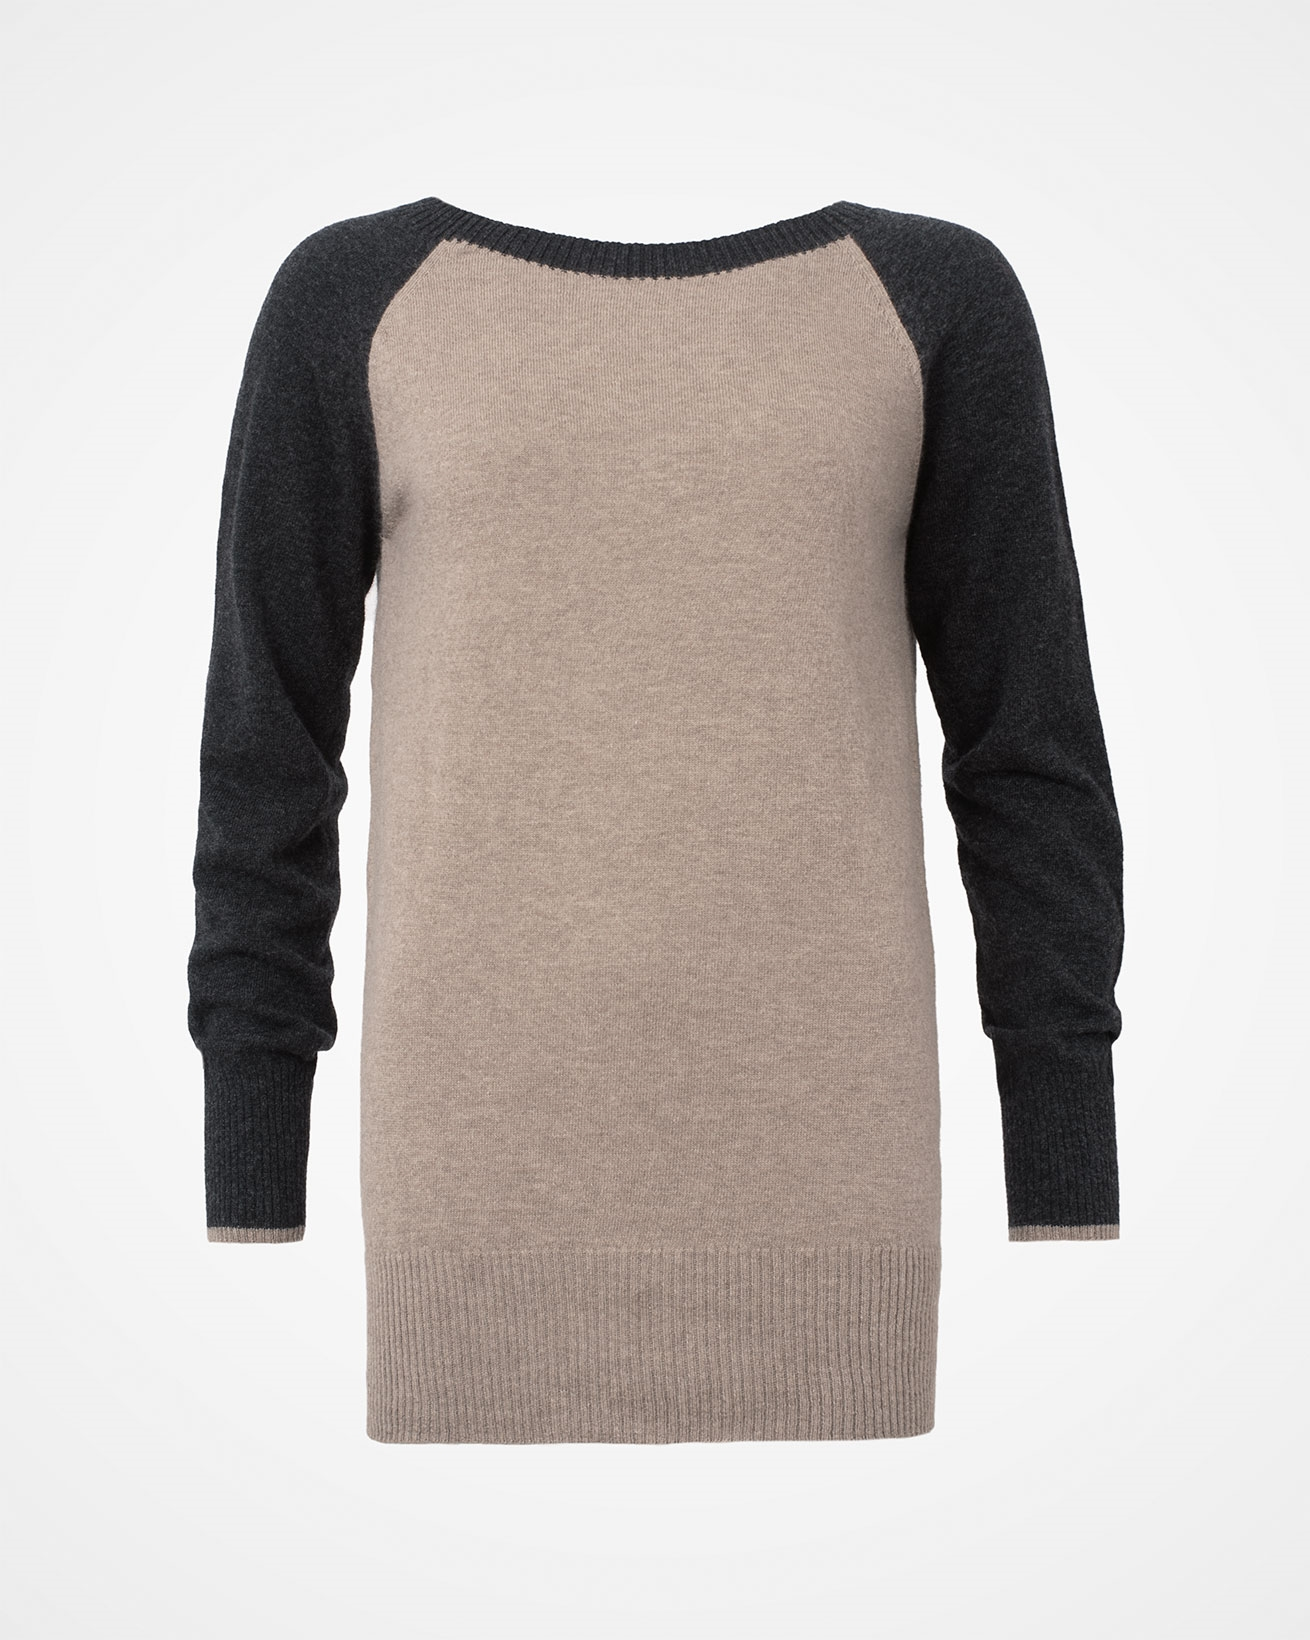 6344_supersoft-slouch-jumper_charcoal-colourblock_front.jpg